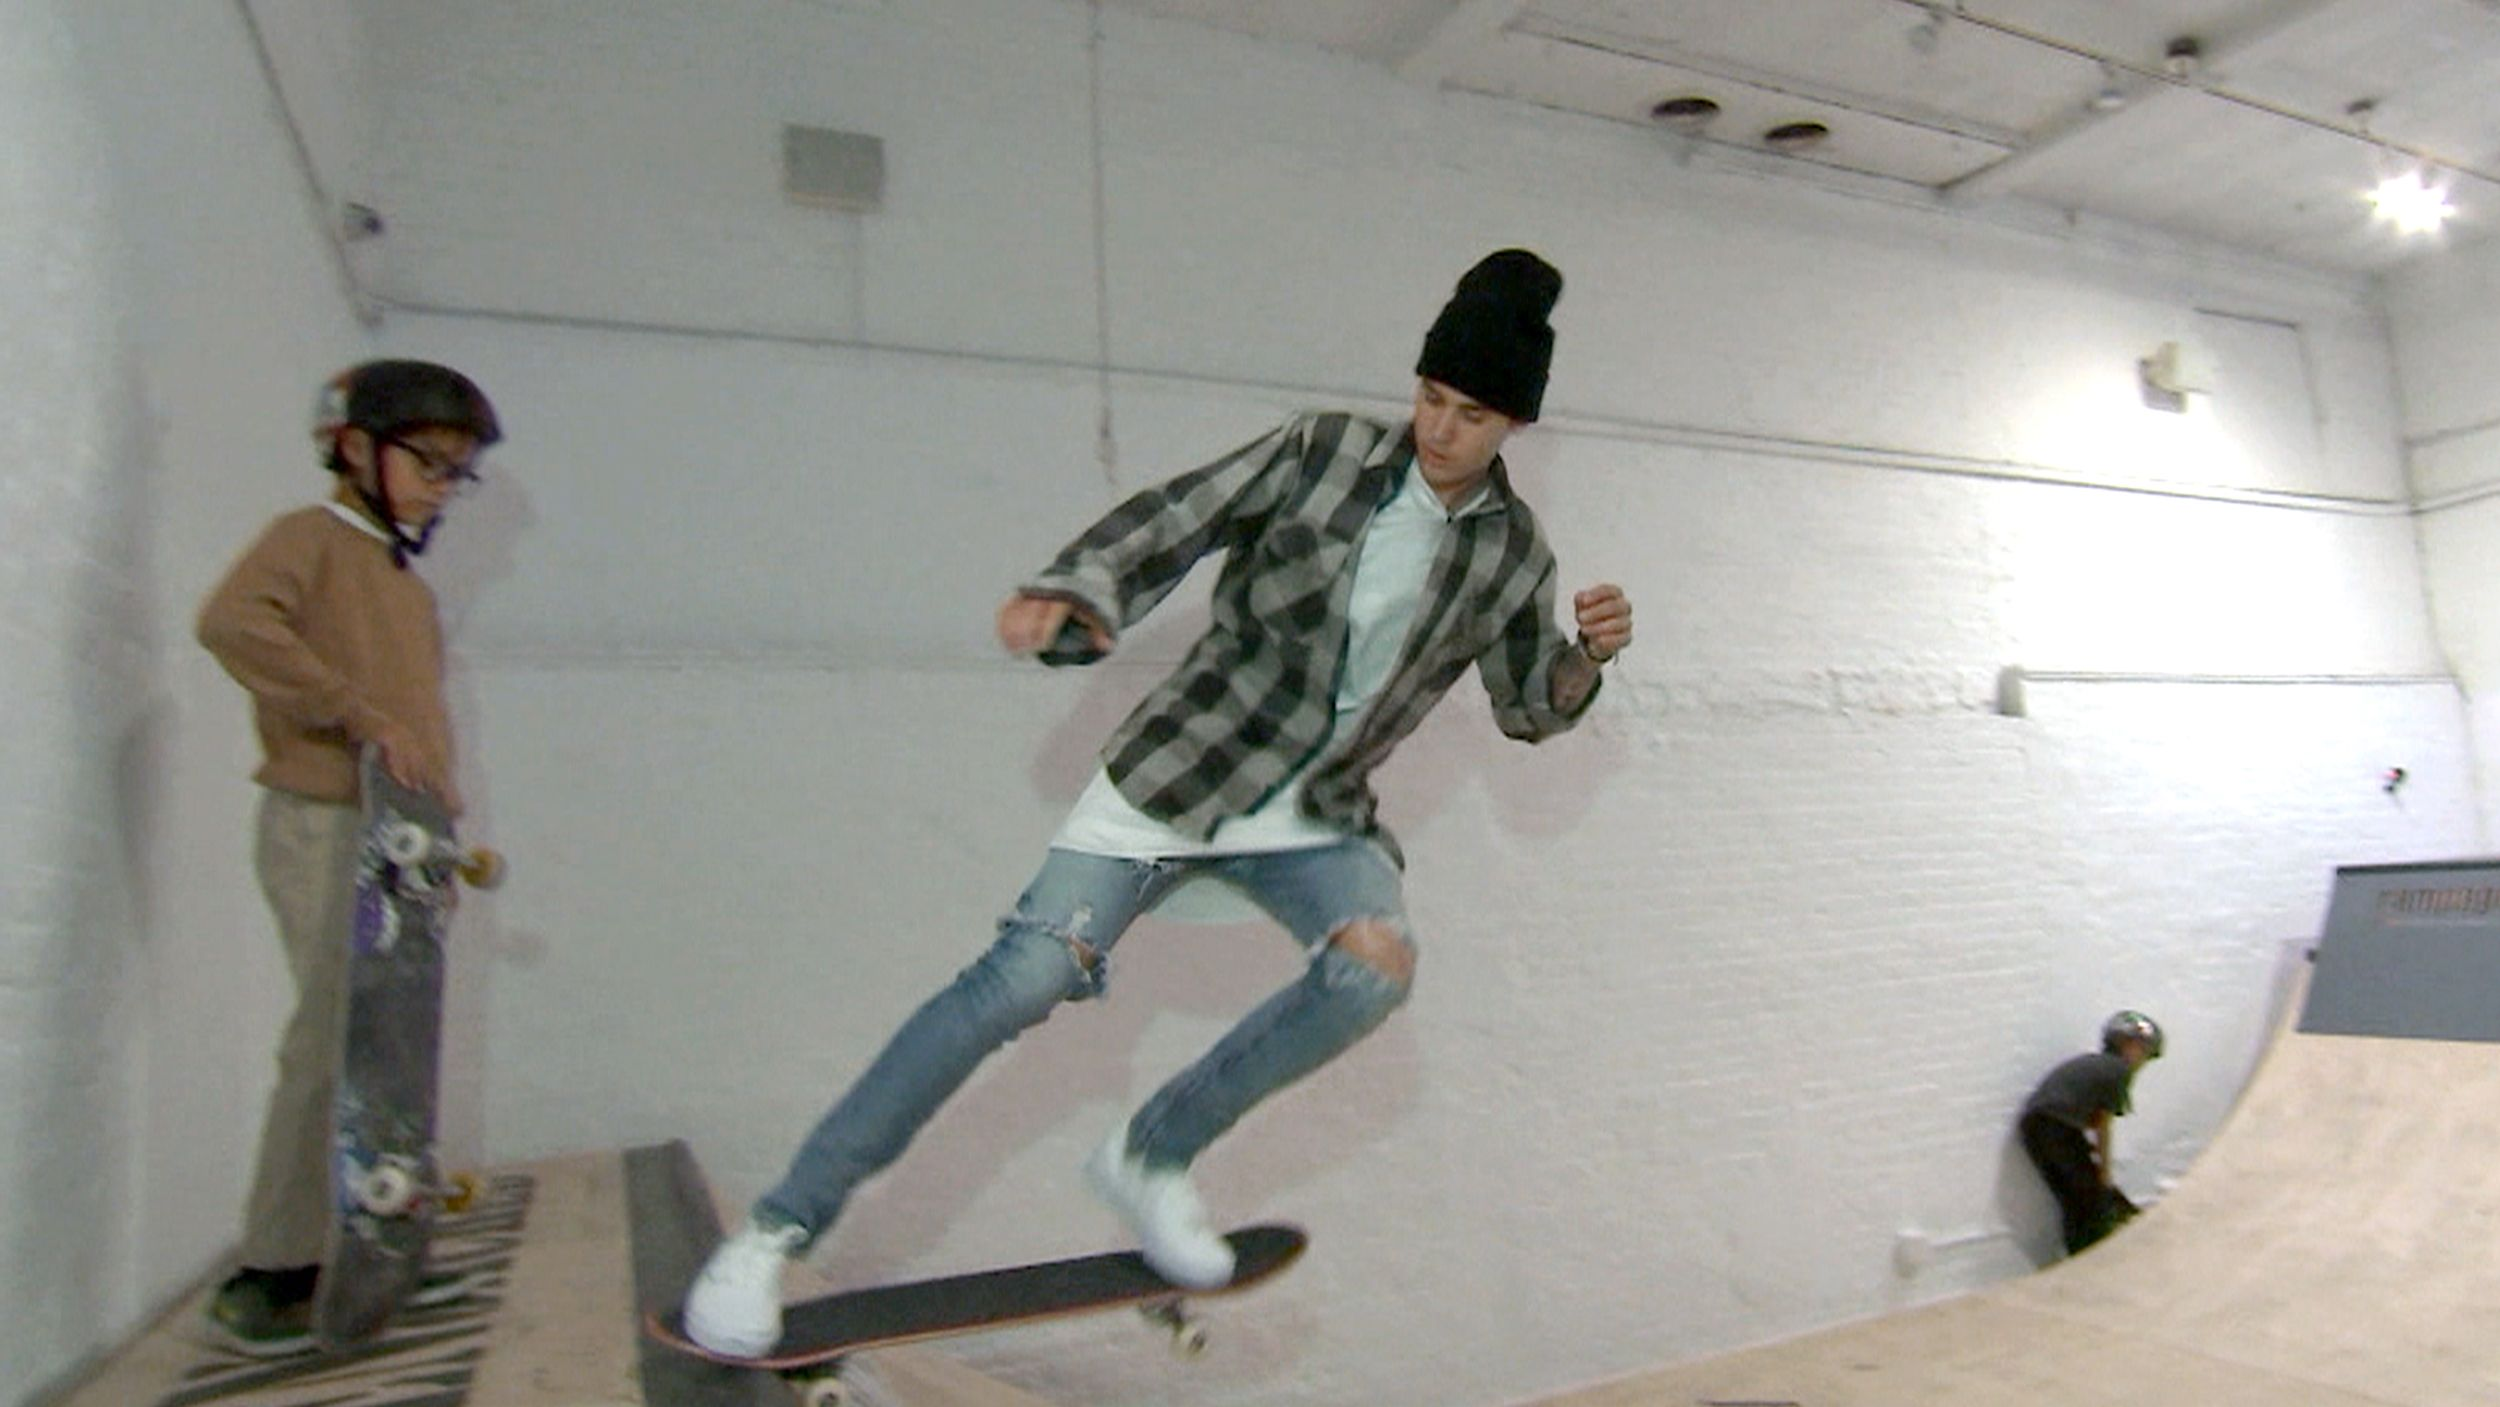 Justin Bieber shows off skateboarding skills ahead of TODAY concert